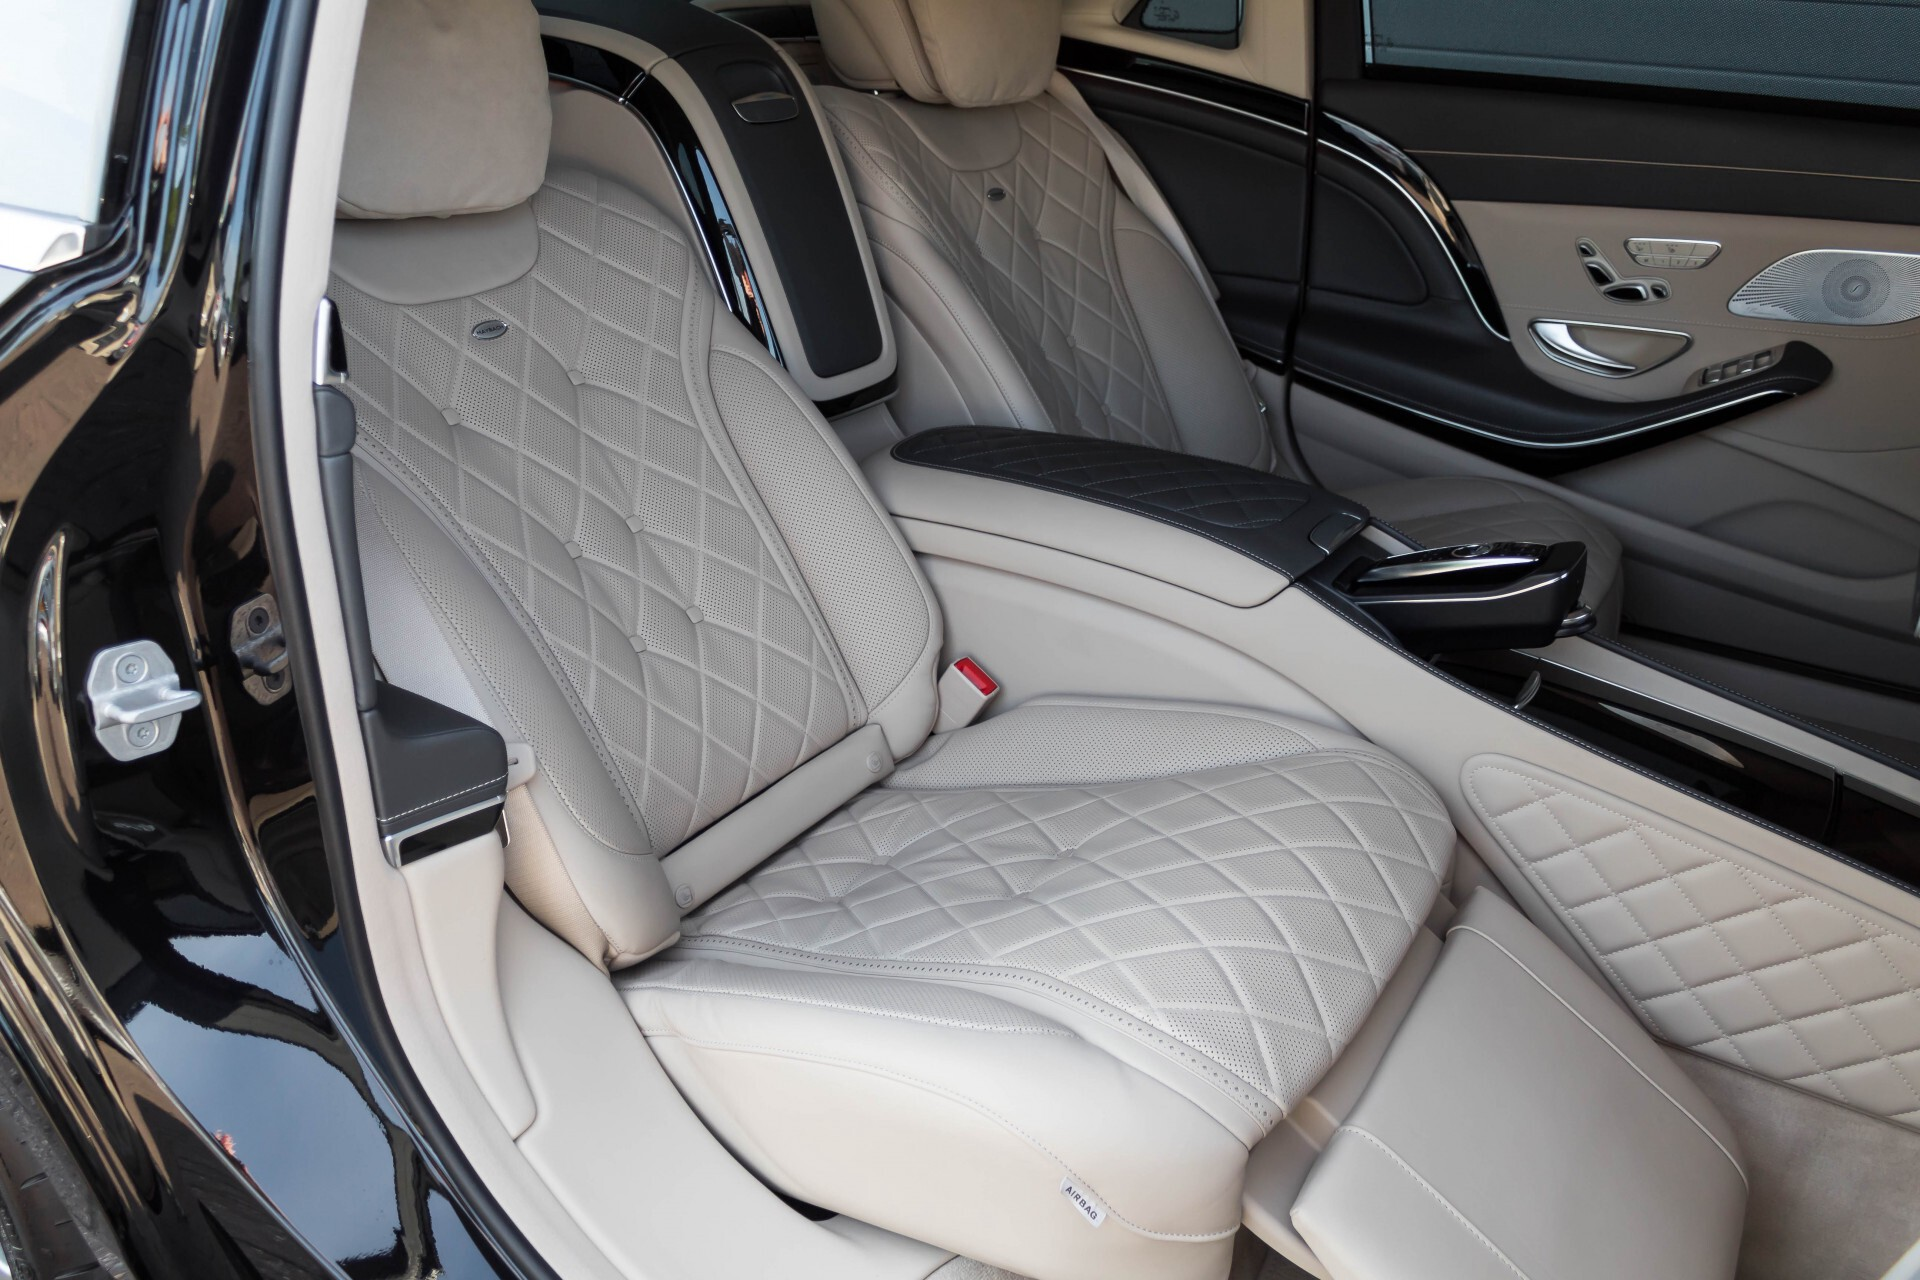 Mercedes-Benz S-Klasse 560 Maybach 4-M Designo First Class Full Options Aut9 Foto 7